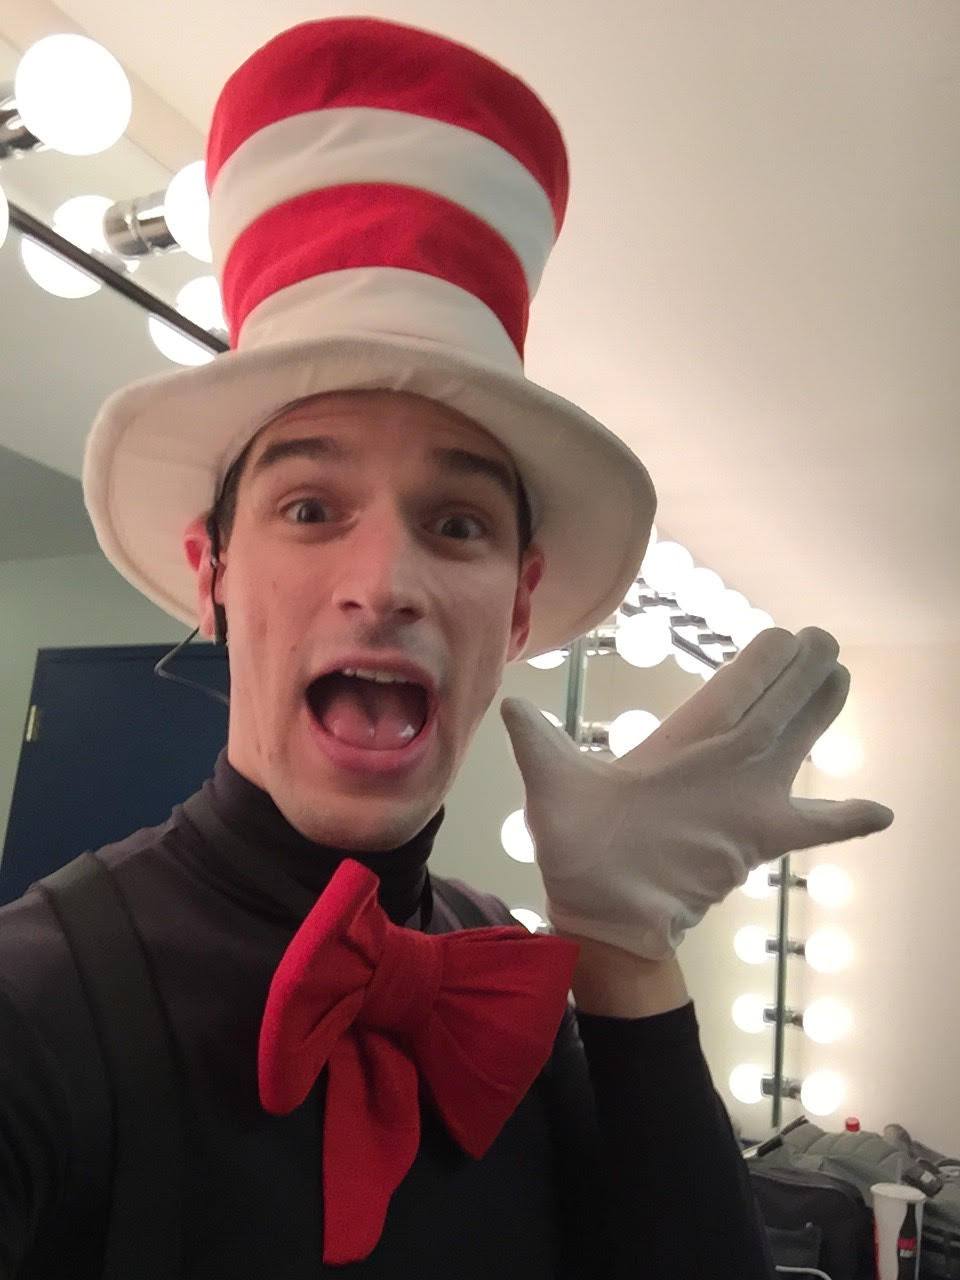 Michael as the Cat in the Hat